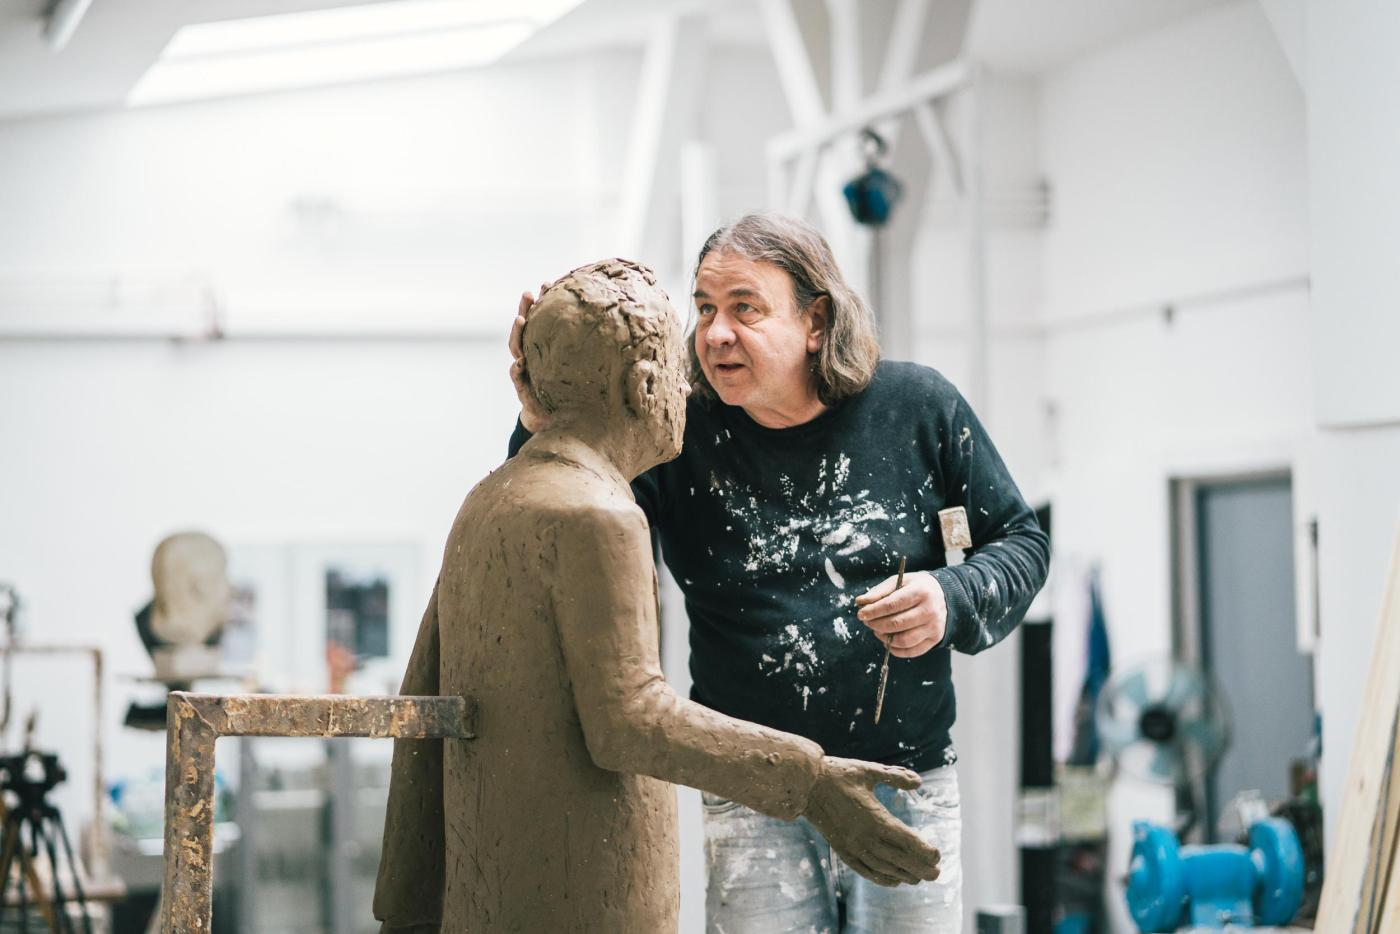 Hamburg sculptor Thomas Jastram has succeeded in capturing the essence of Walter Lange, depicting him as a life-sized bronze figure that meets the onlooker at eye level.